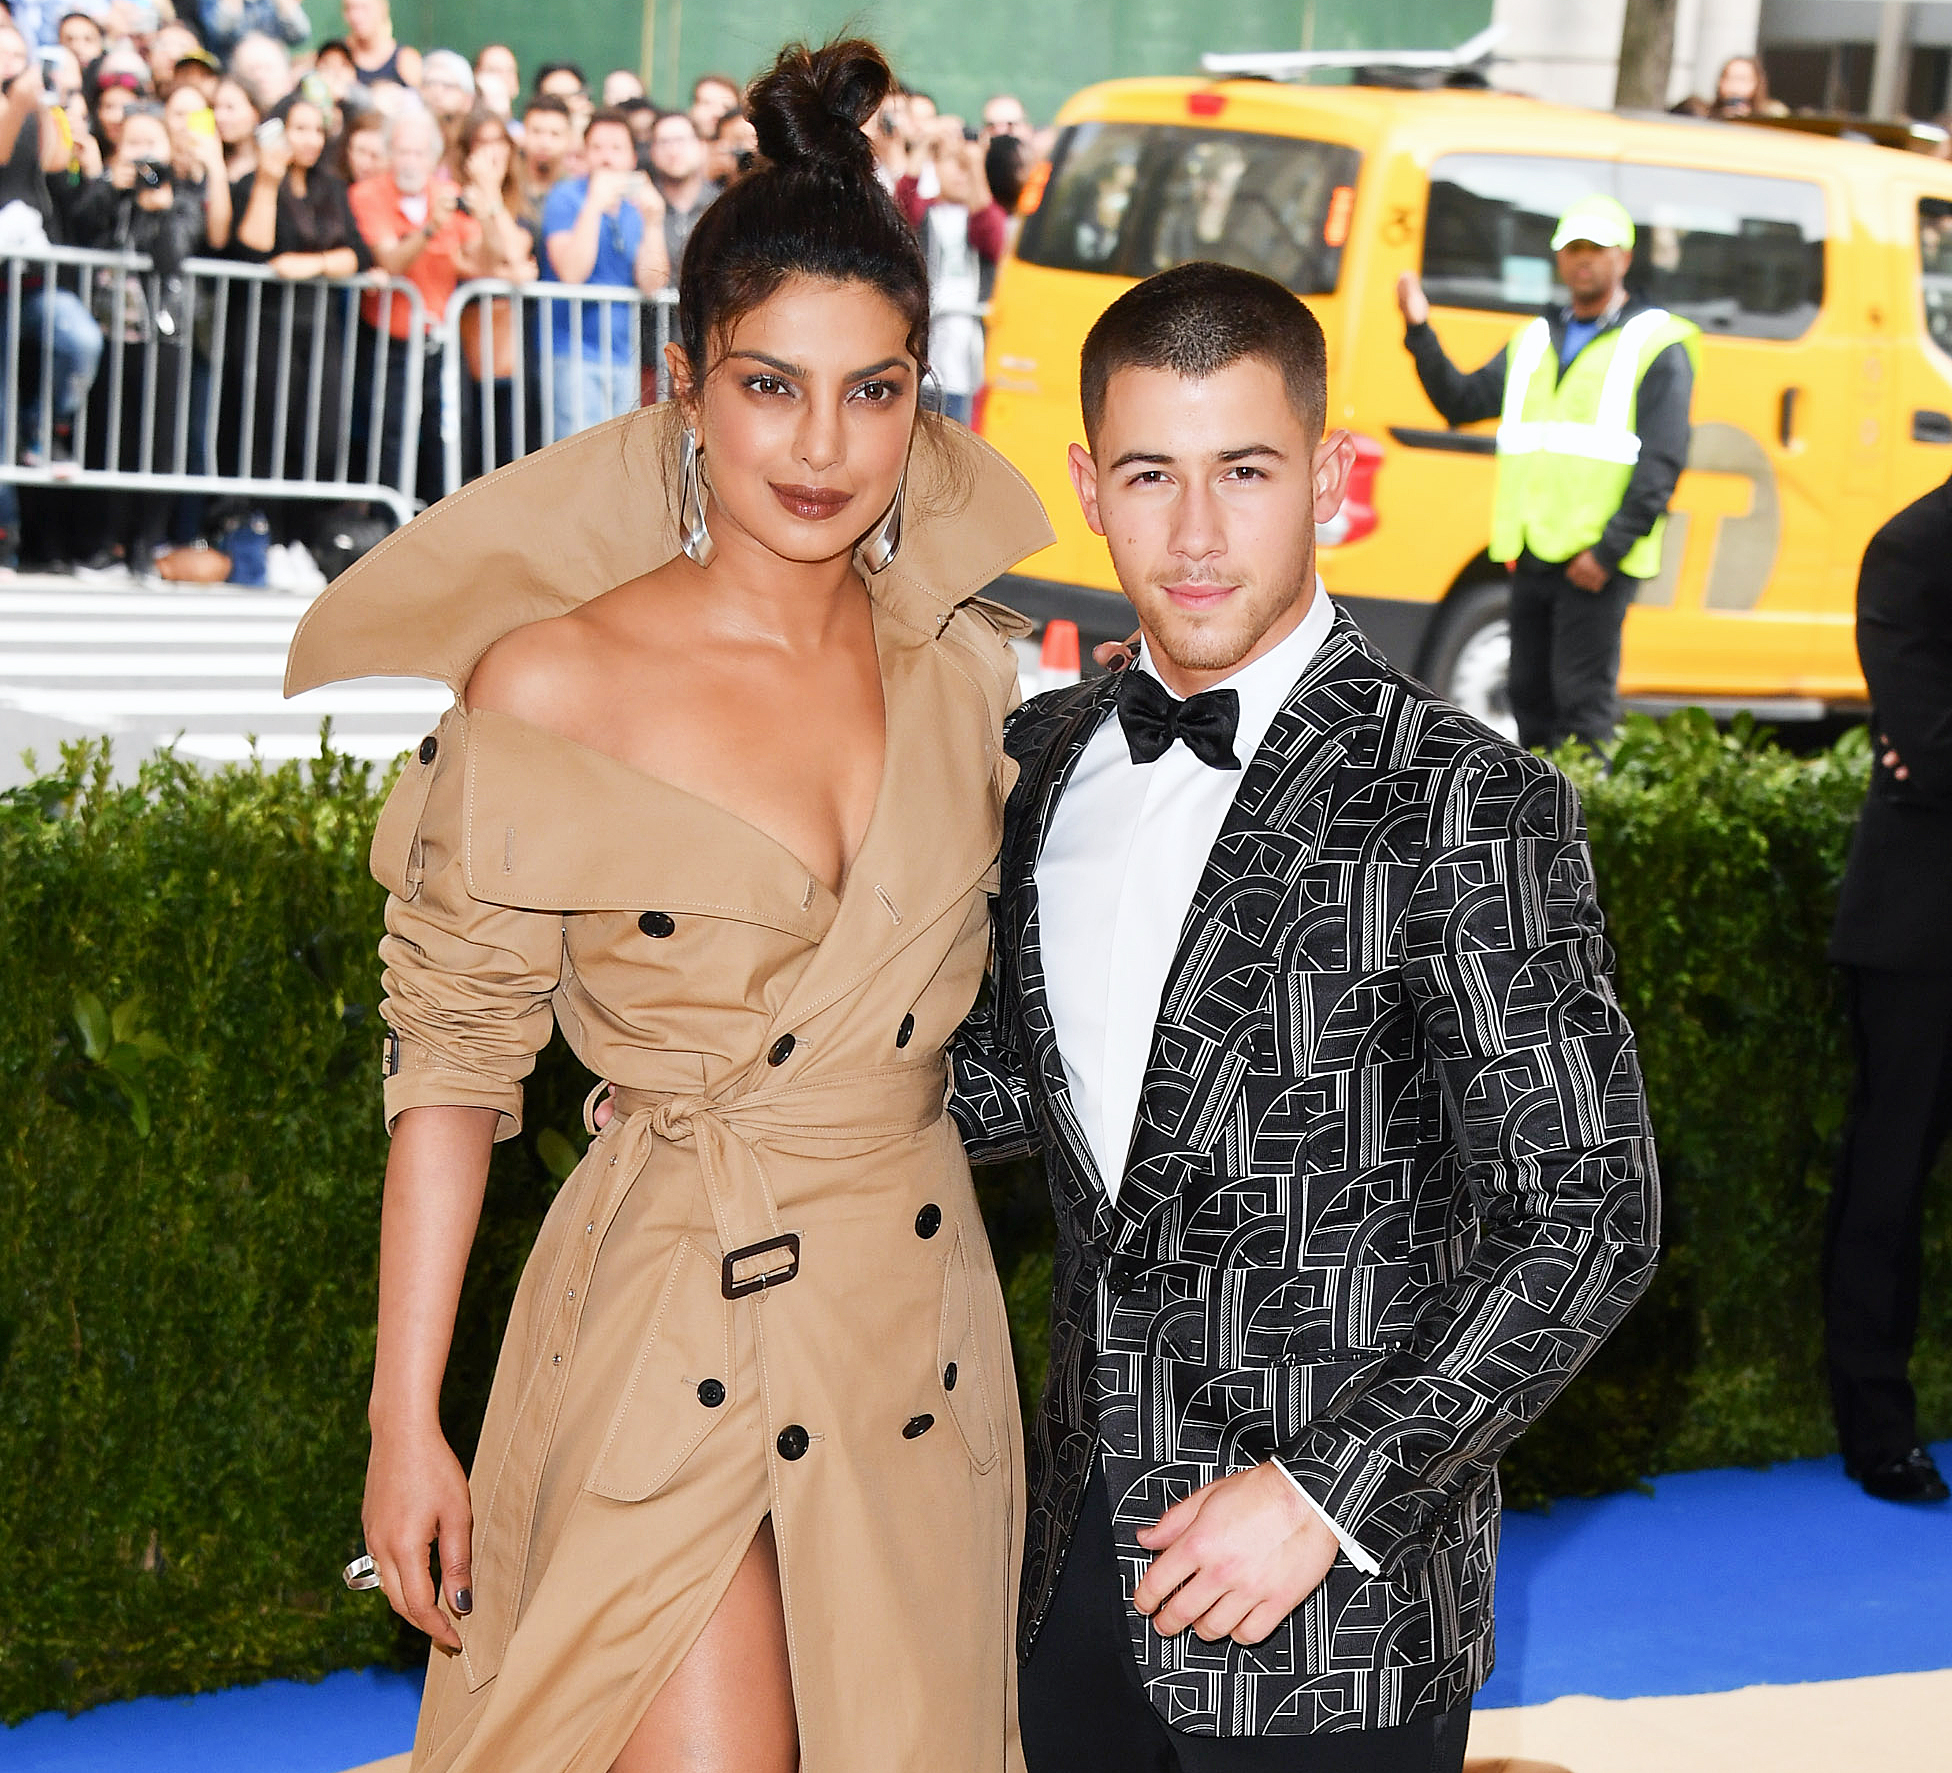 Don't get jealous but Priyanka Chopra is dating Nick Jonas